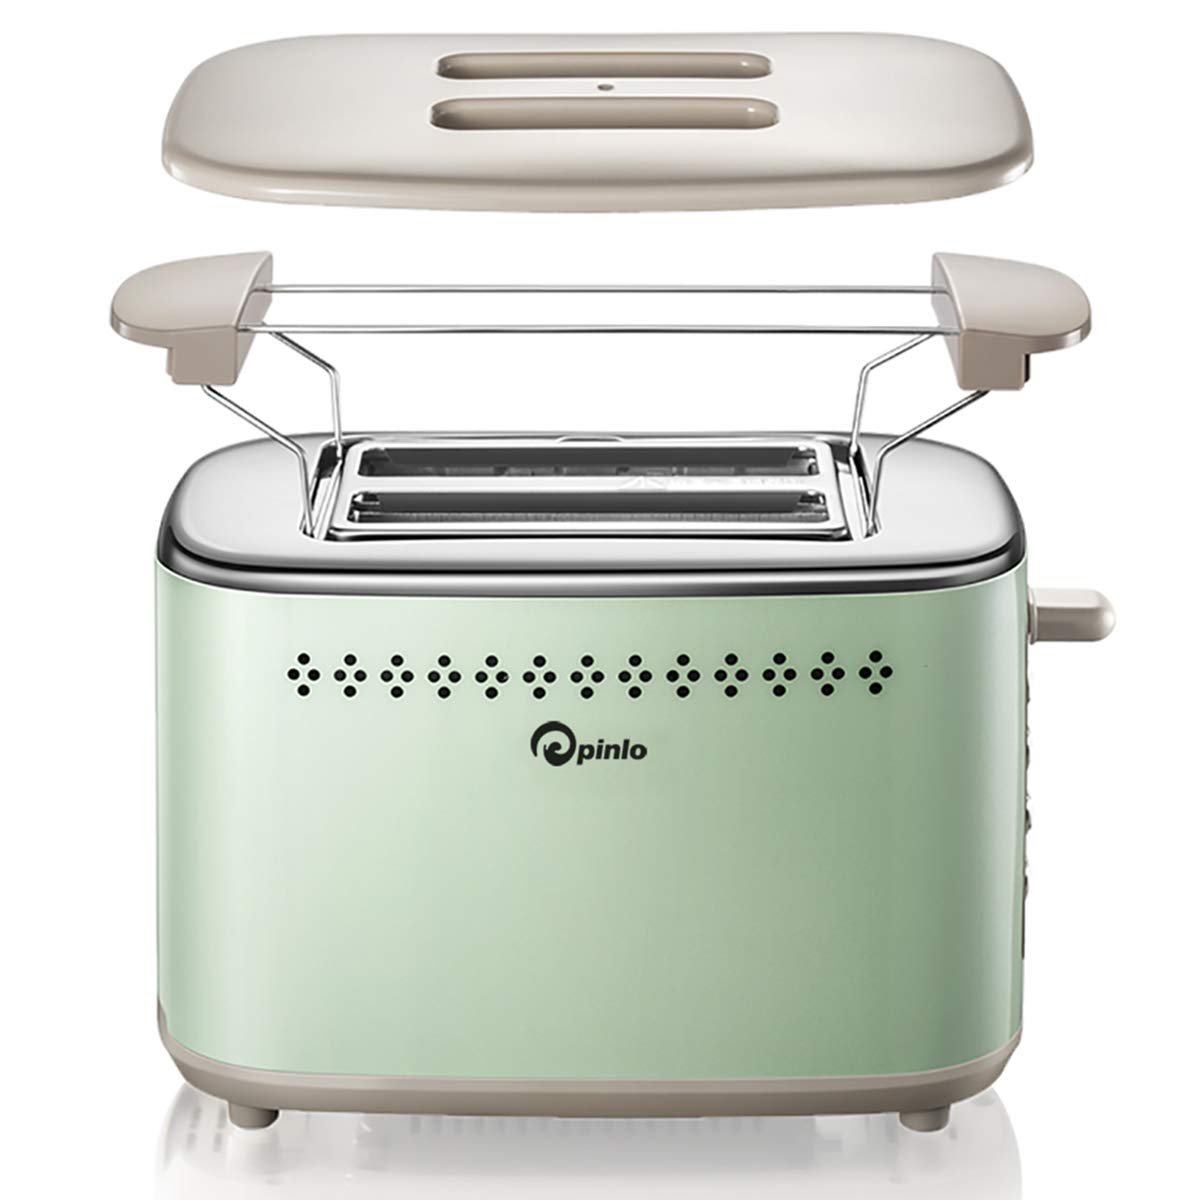 Toaster 2-Slice Stainless Steel Toasters with 2 Extra Wide Slots 6 Browning Dials and Removable Crumb Tray Warming Rack for Breakfast Bread Muffins Ovens Toasters with Defrost Reheat Cancel Function